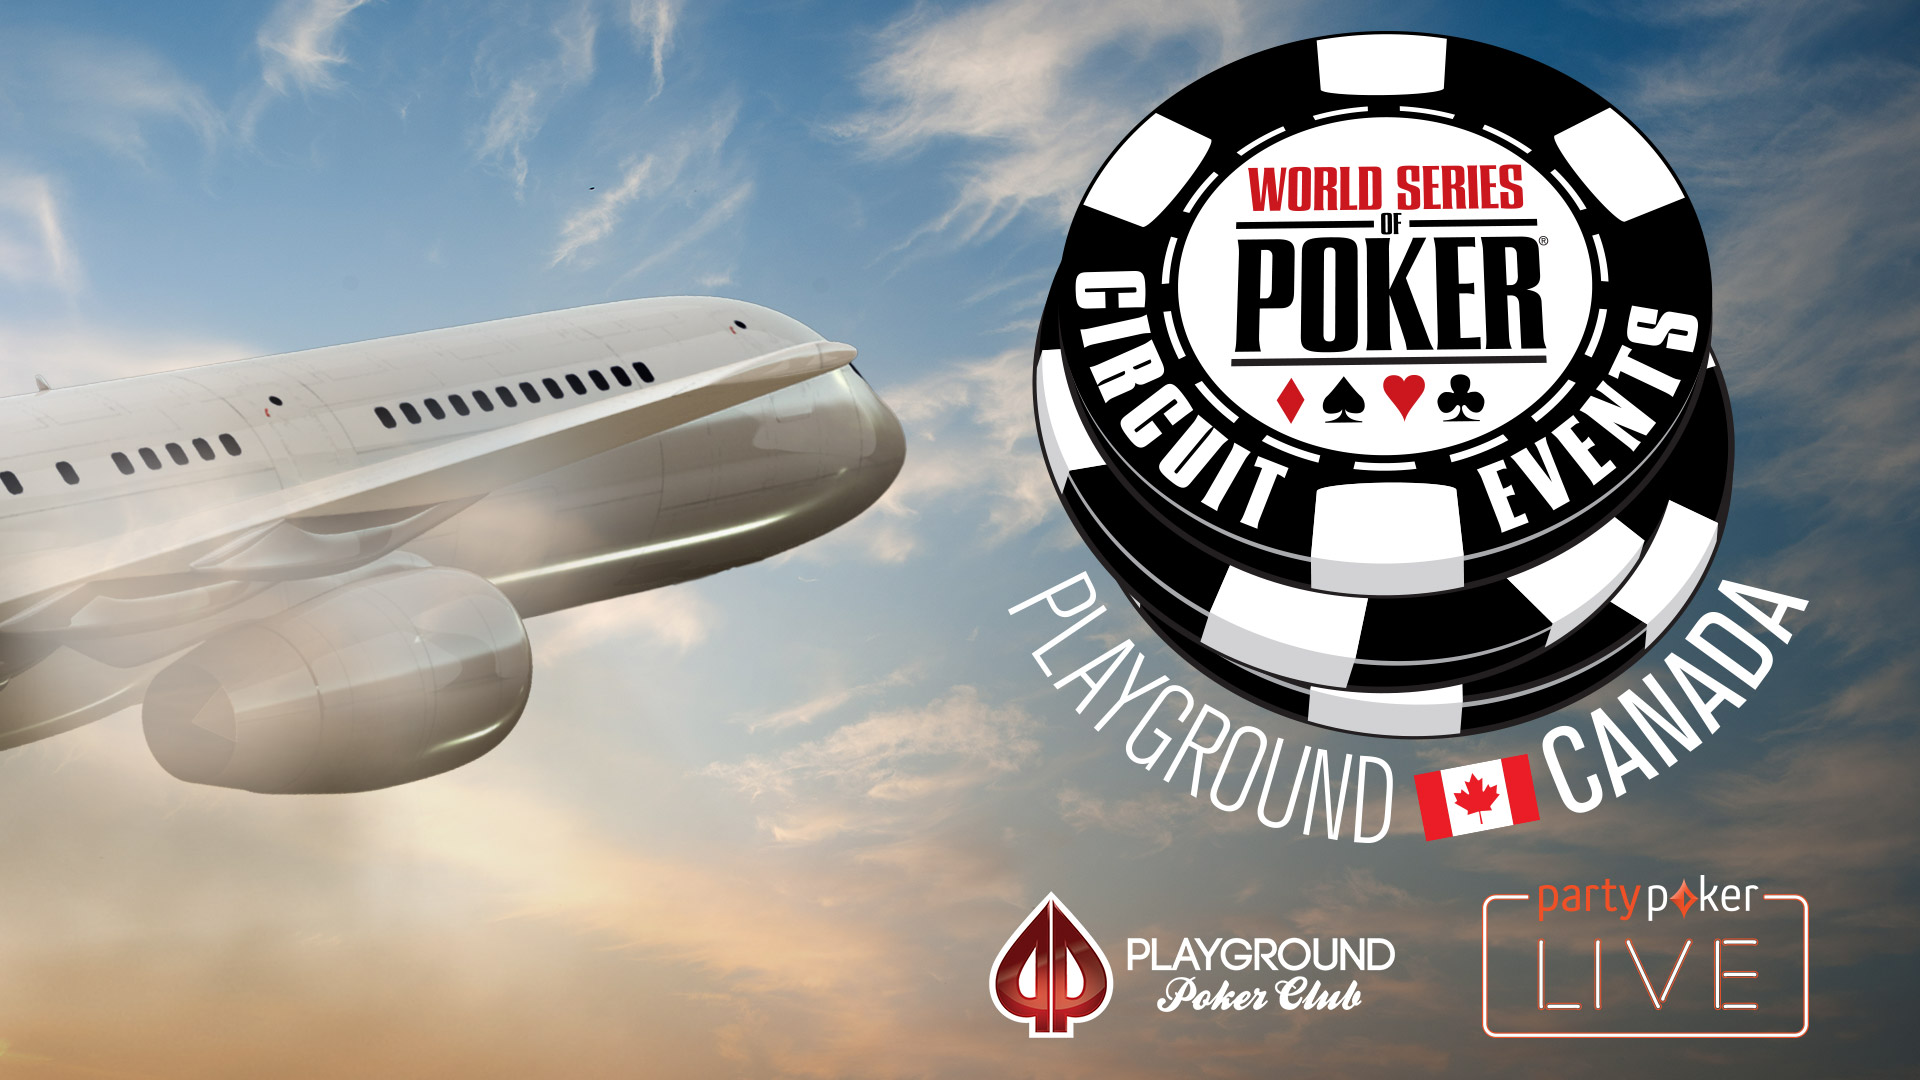 Travel Guide to the WSOP-C Playground